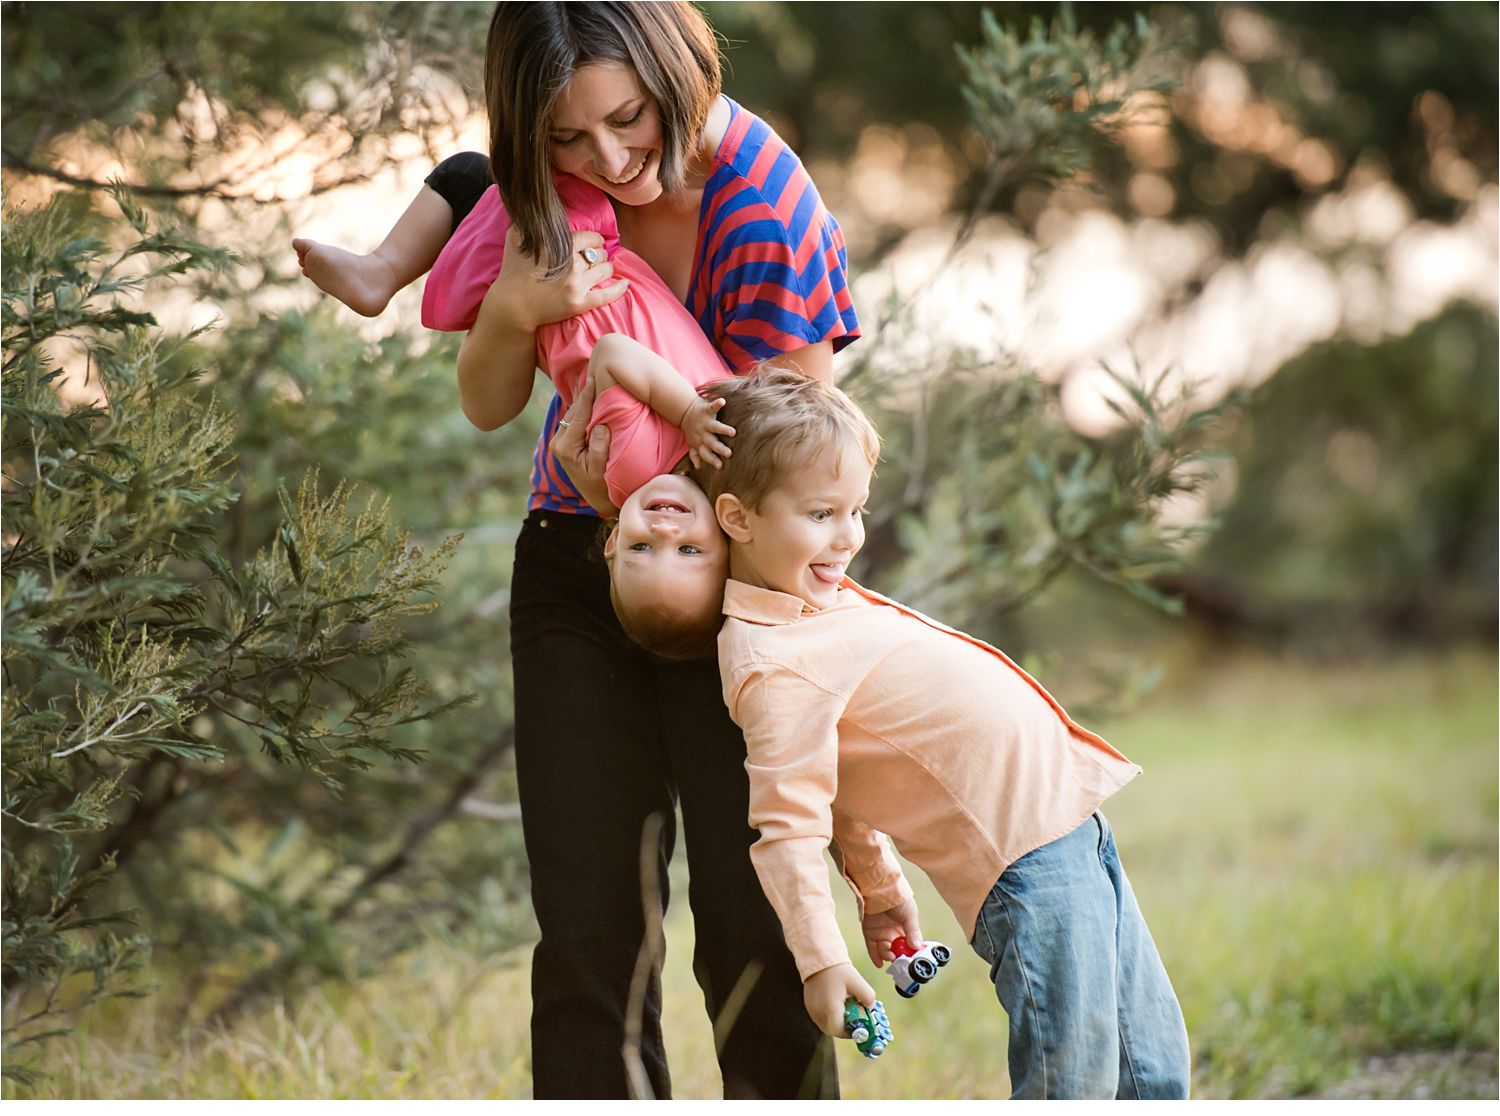 Bec-Stewart-Family-and-children-Lifestyle-Photographer-city-of-casey-melbourne-16.jpg